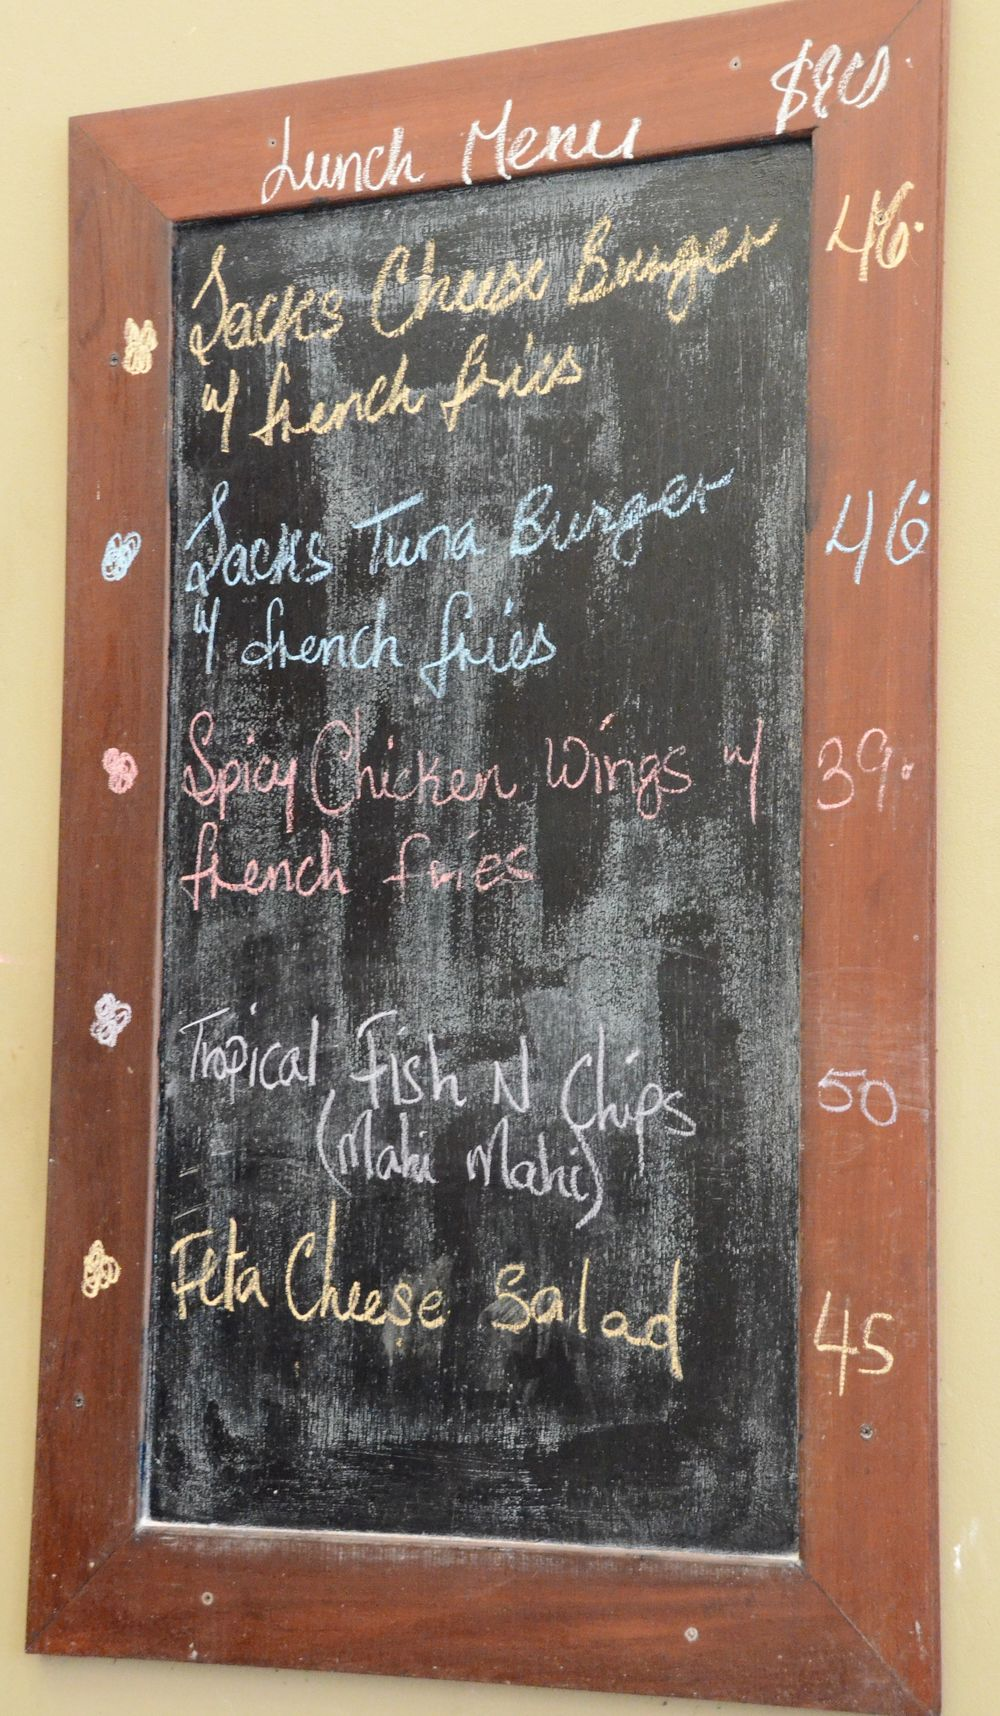 Jack's Lunch Menu 1.jpg